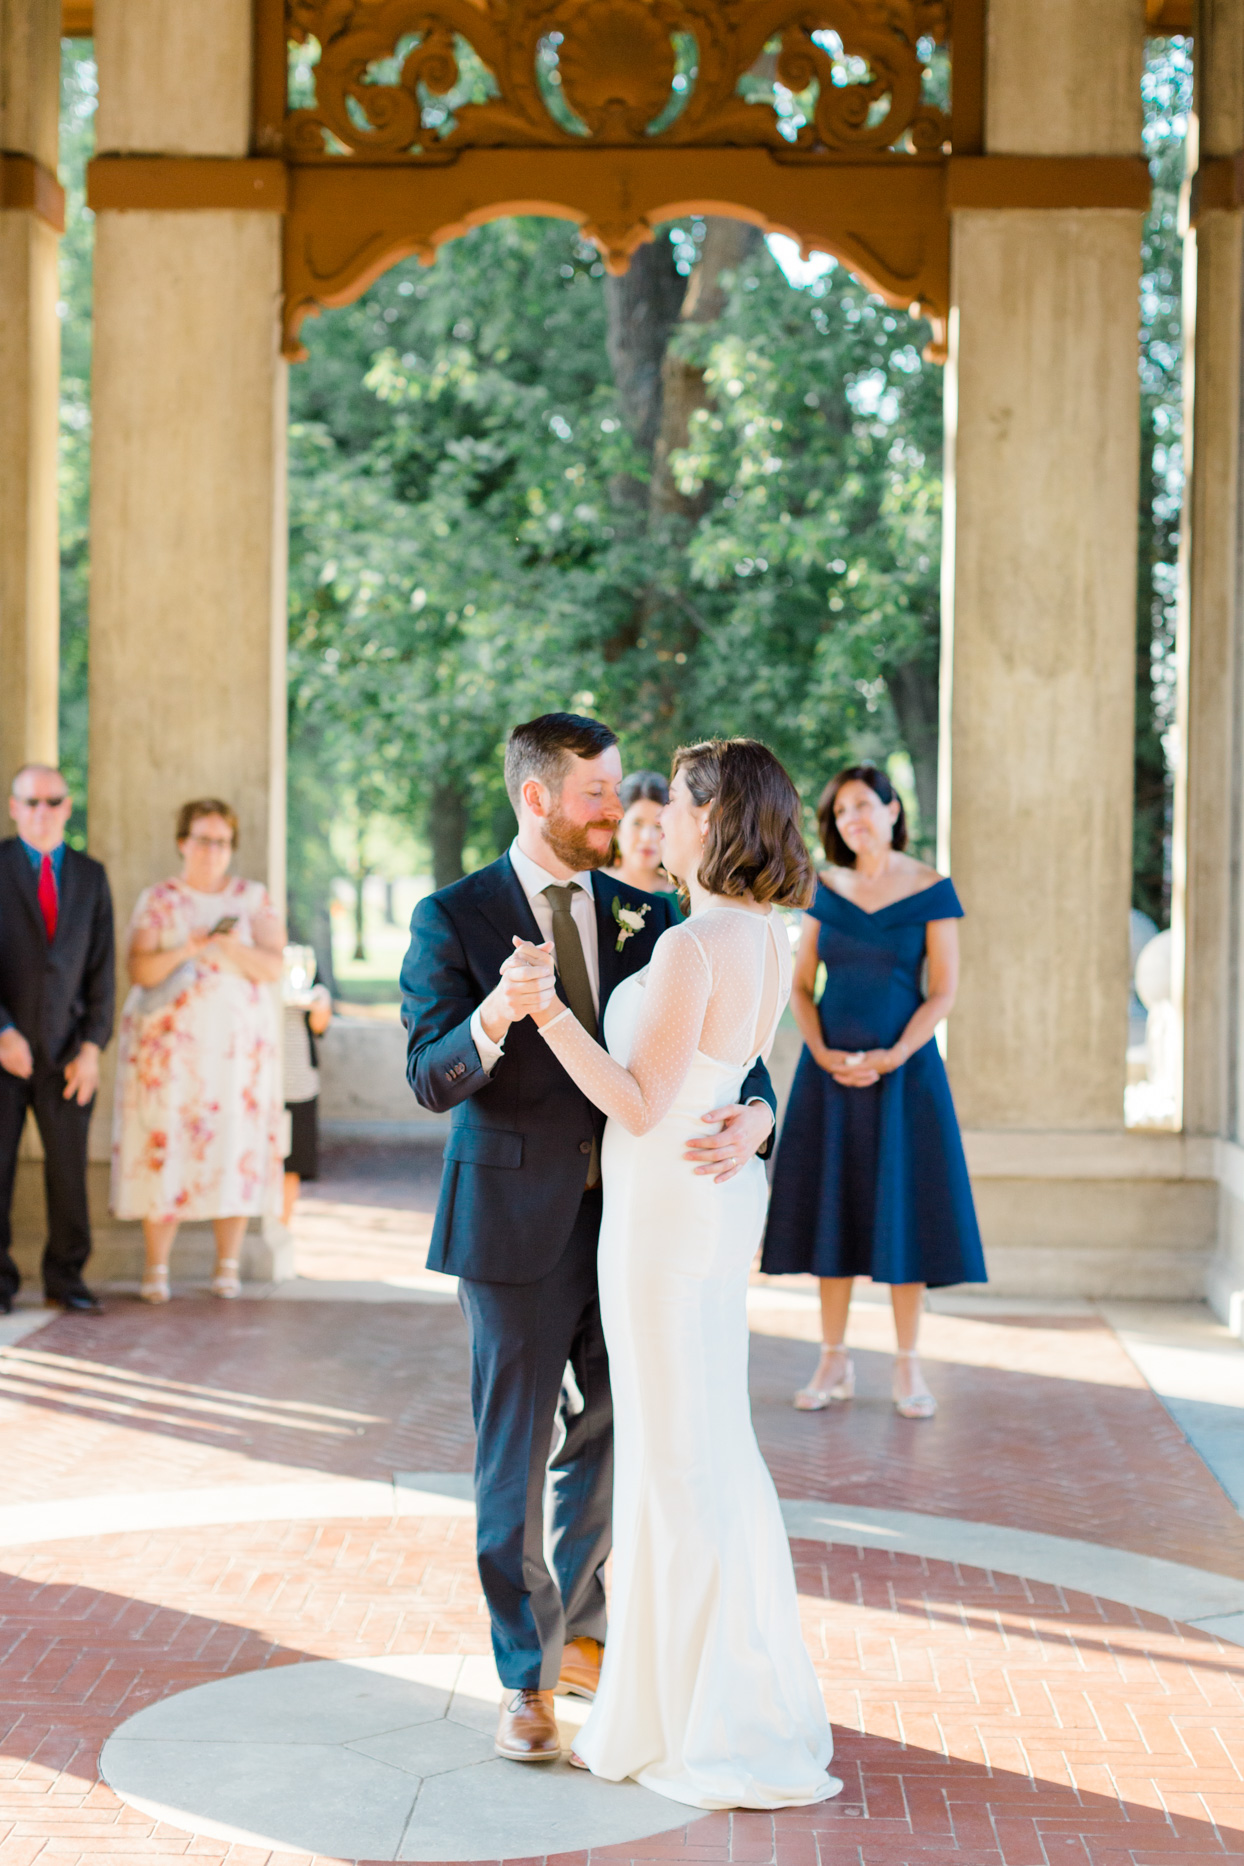 wedding first dance in outdoor garden structure